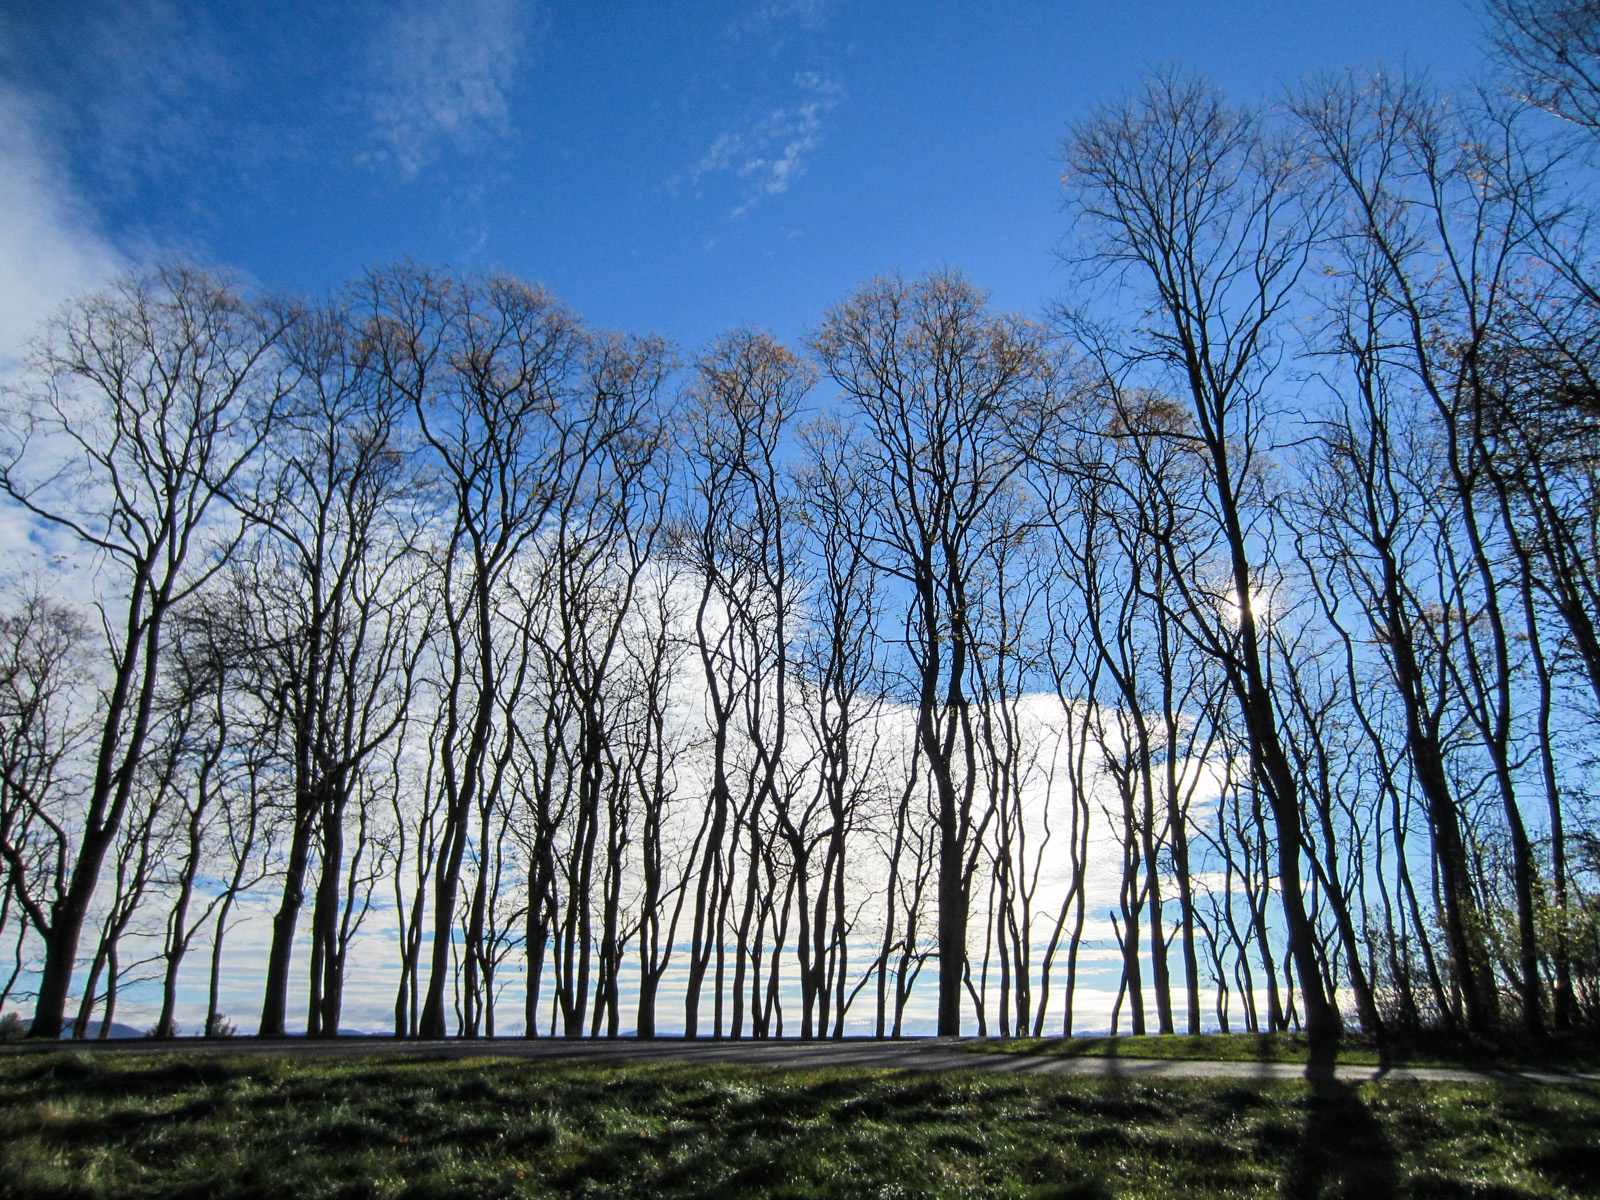 Skinny Trees Against a Blue Fall Sky | Cuteness, in all its versatility